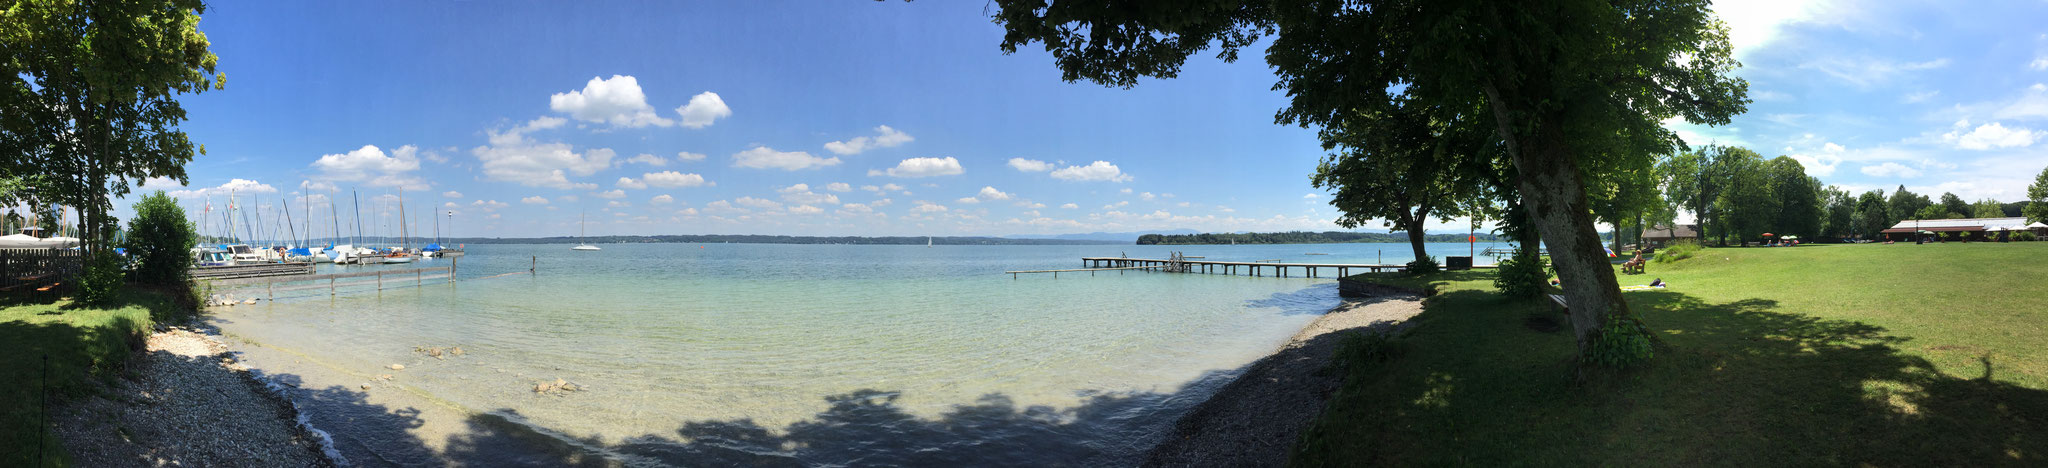 Tutzing, Starnberger See, Germany (Summer 2018)